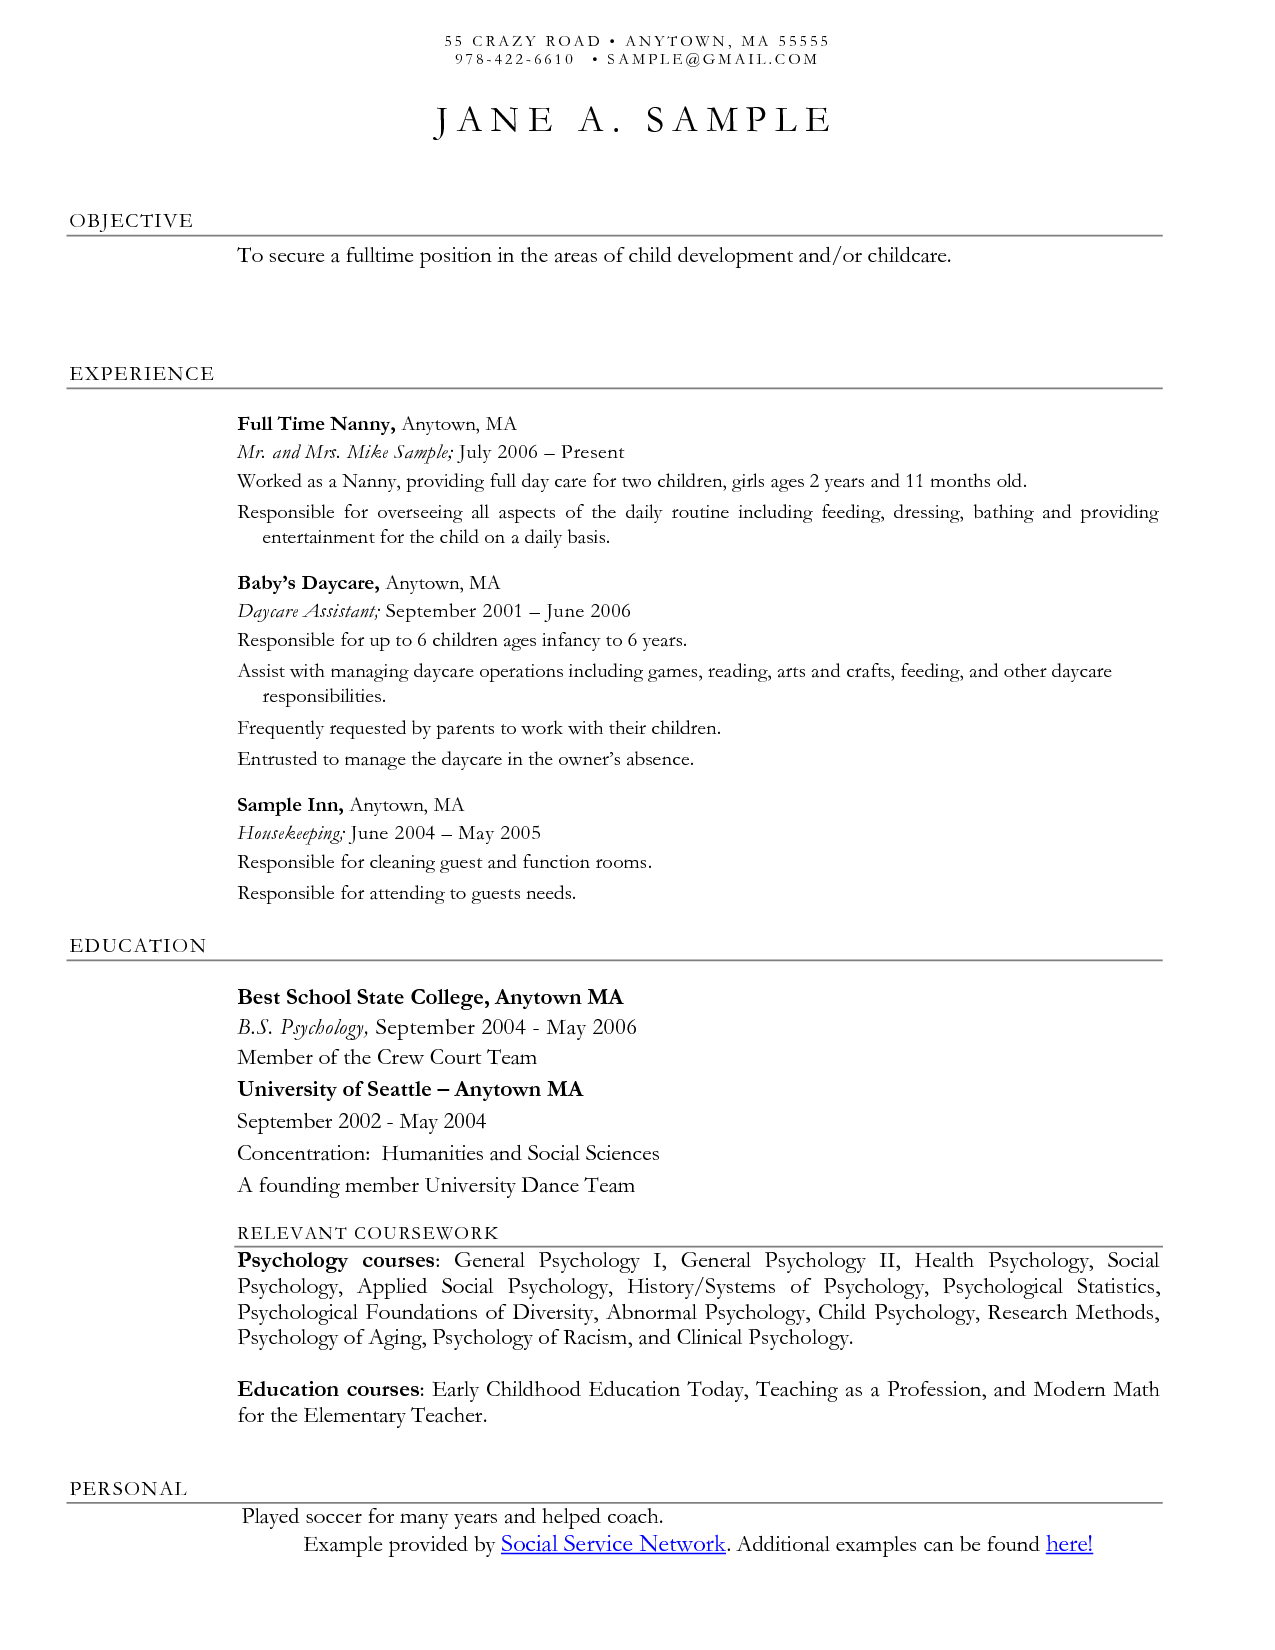 Child Care Resume Cover Letter  HttpWwwResumecareerInfo